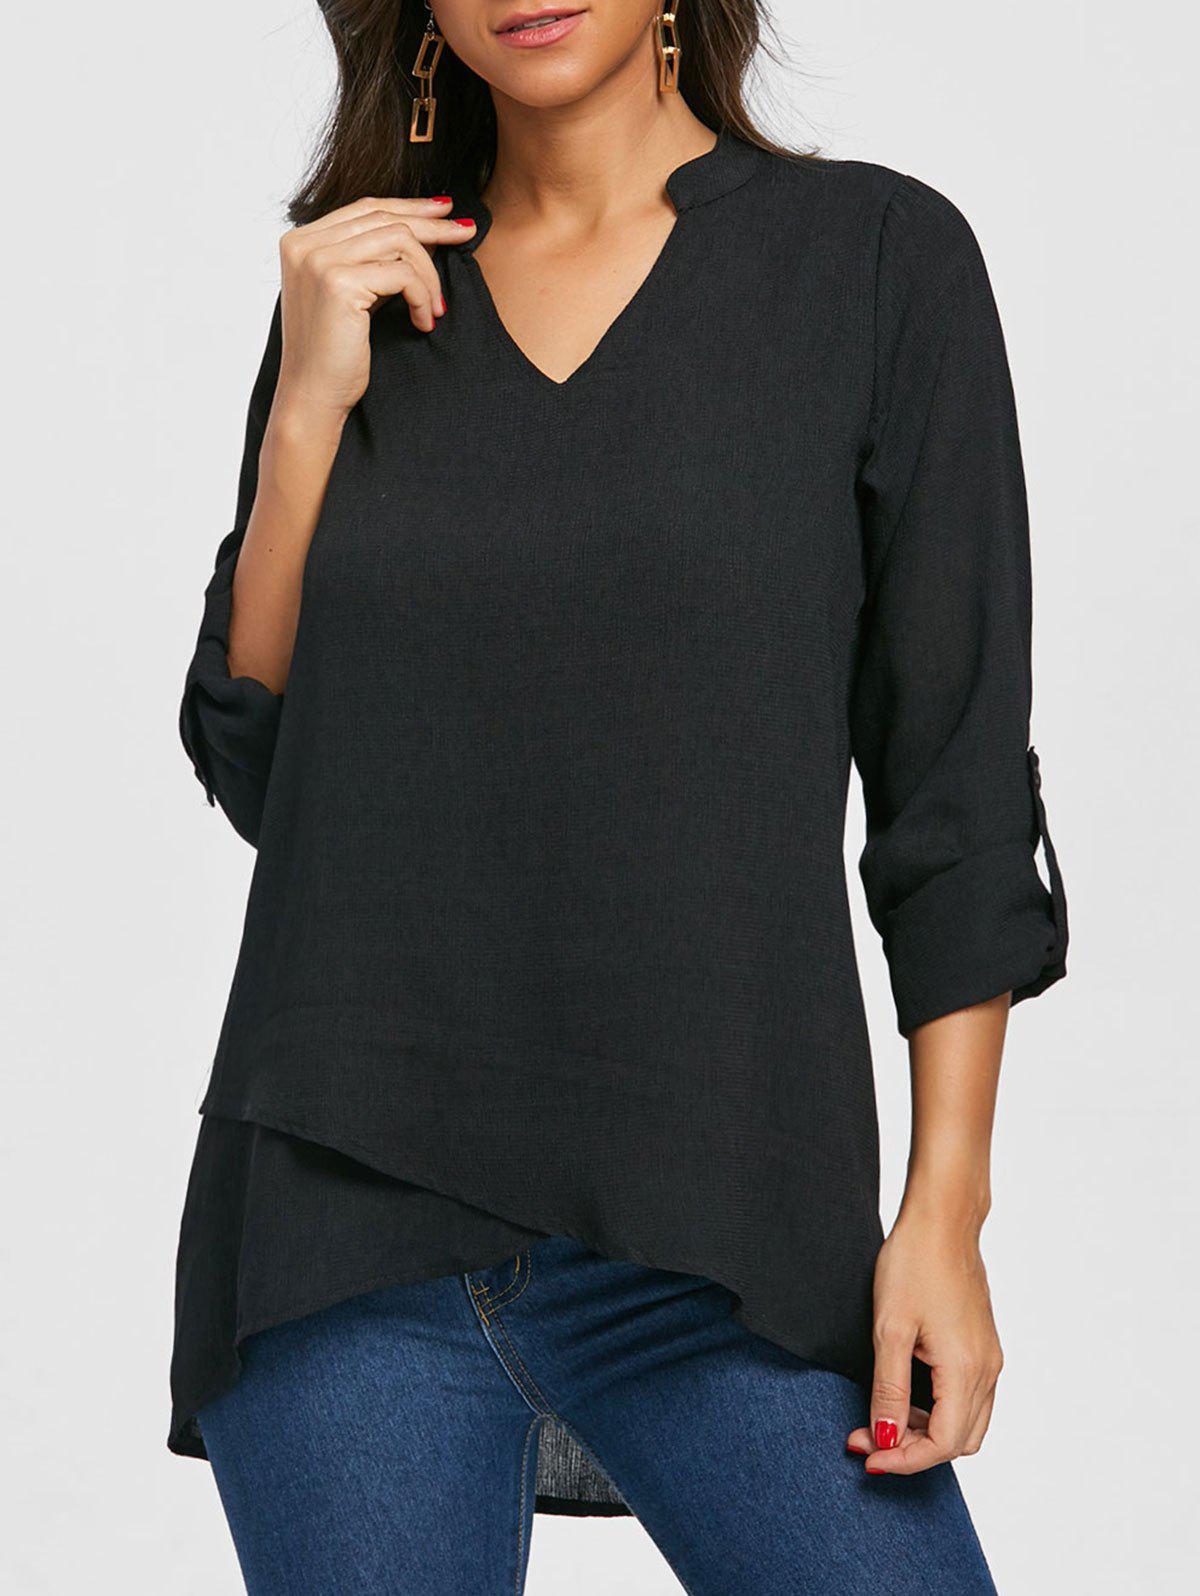 V Neck Asymmetric Tunic Blouse - BLACK M